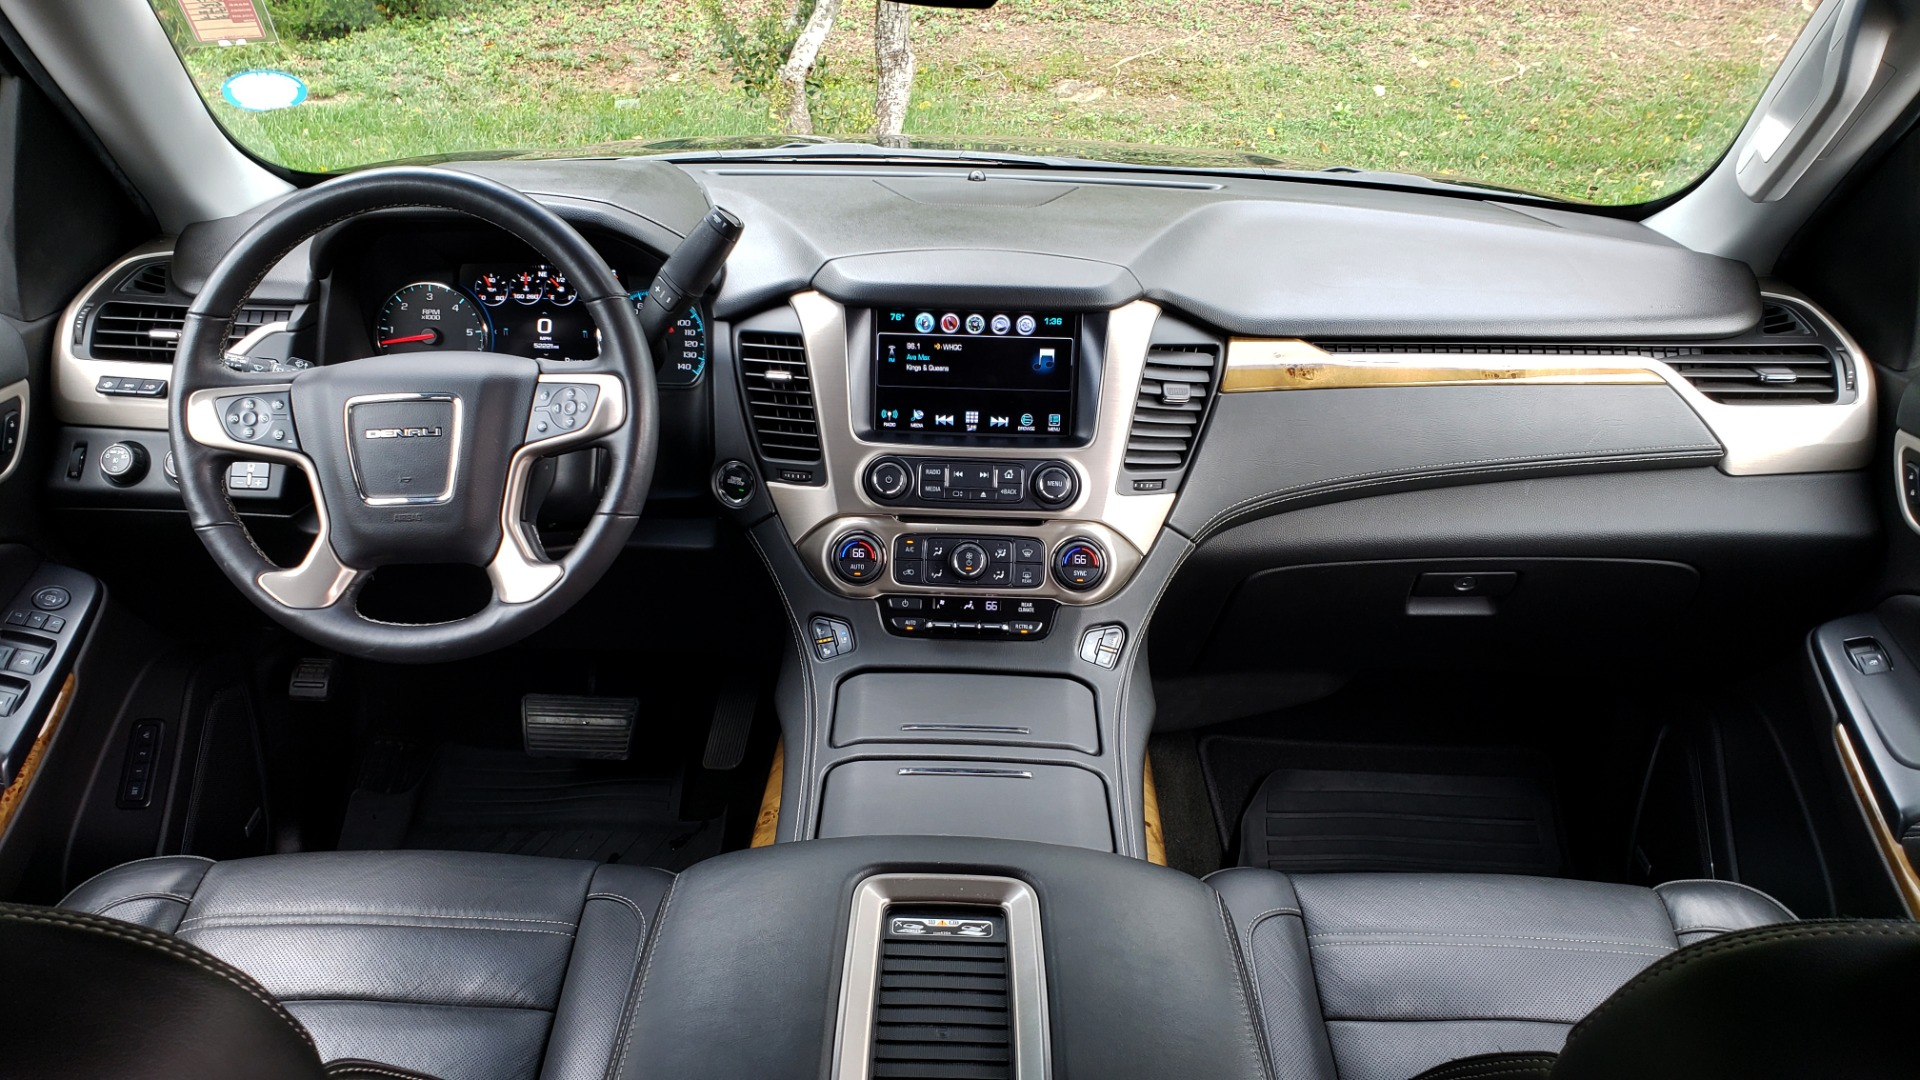 Used 2017 GMC YUKON XL DENALI 4WD / NAV / SUNROOF / ENT / 3-ROWS / BOSE / REARVIEW for sale $48,695 at Formula Imports in Charlotte NC 28227 89